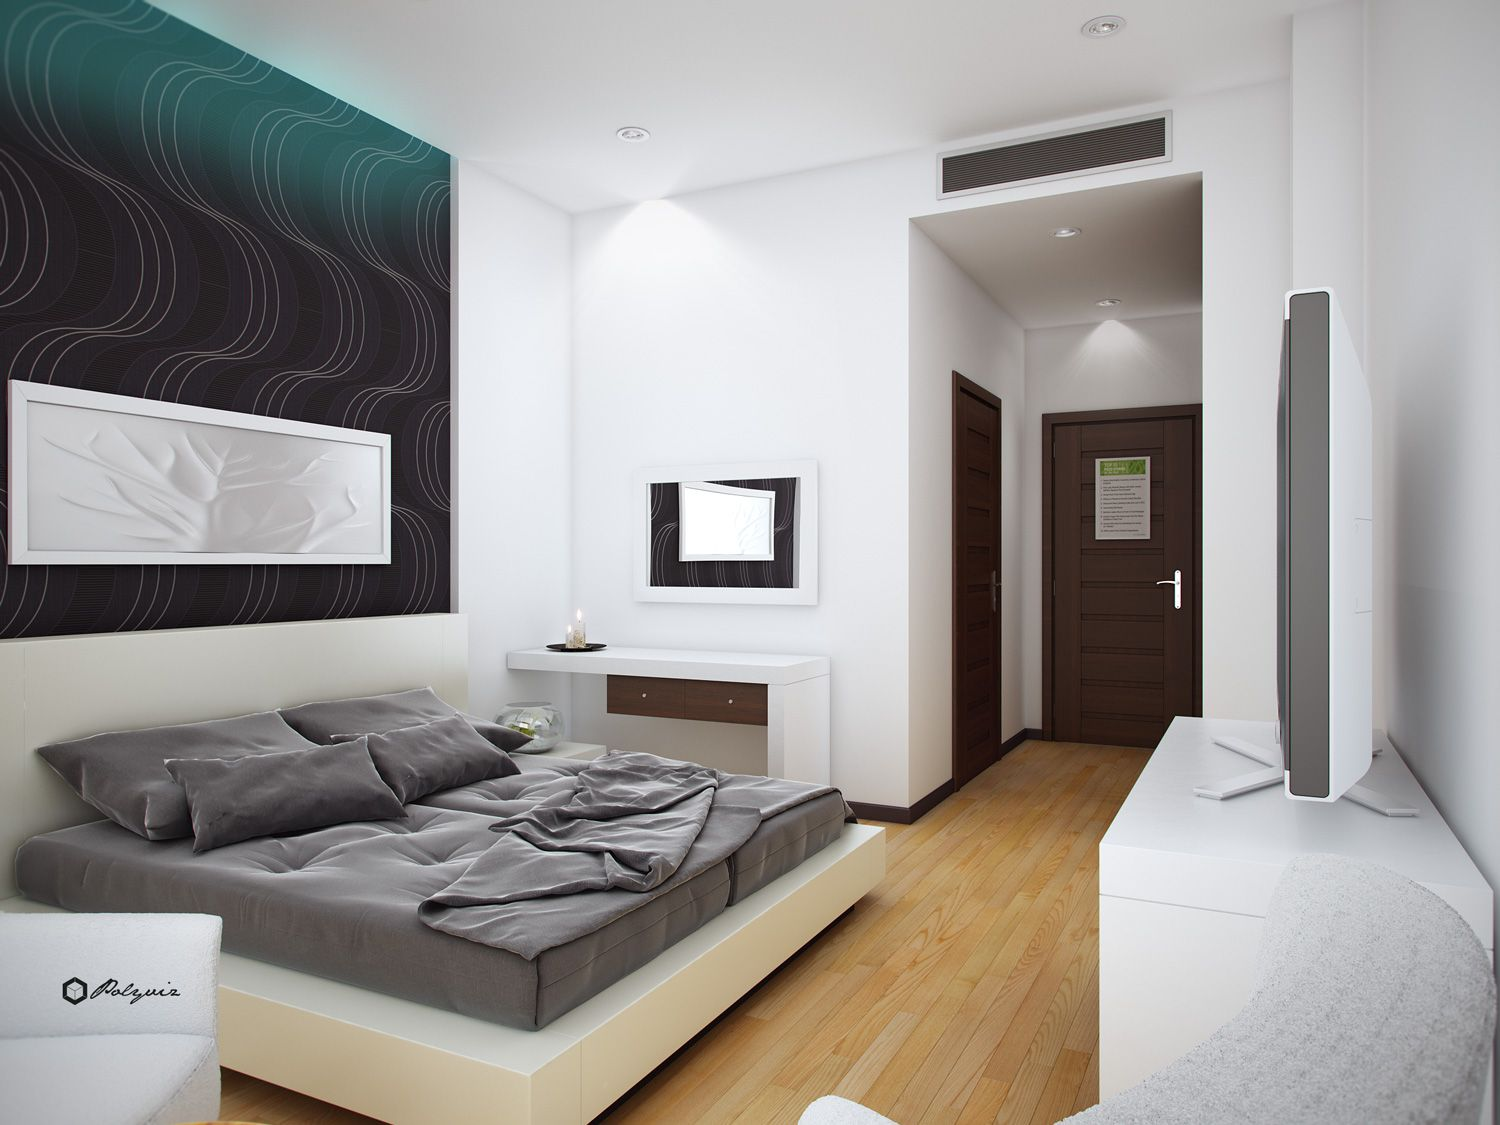 Modern hotel room design google search room design for Room design ideas